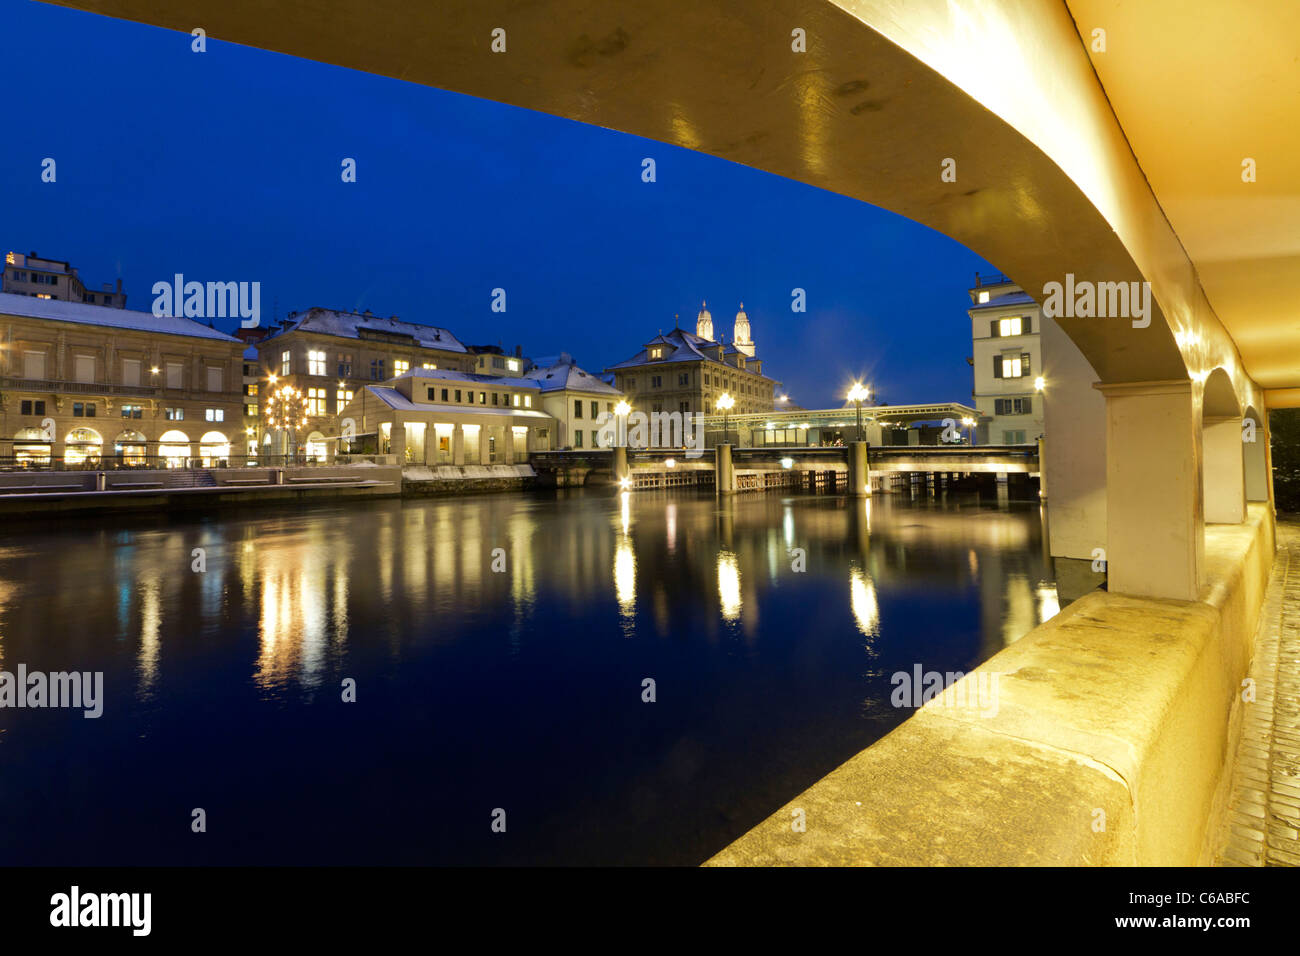 Acades at river Limmat, Zurich, Switzerland - Stock Image